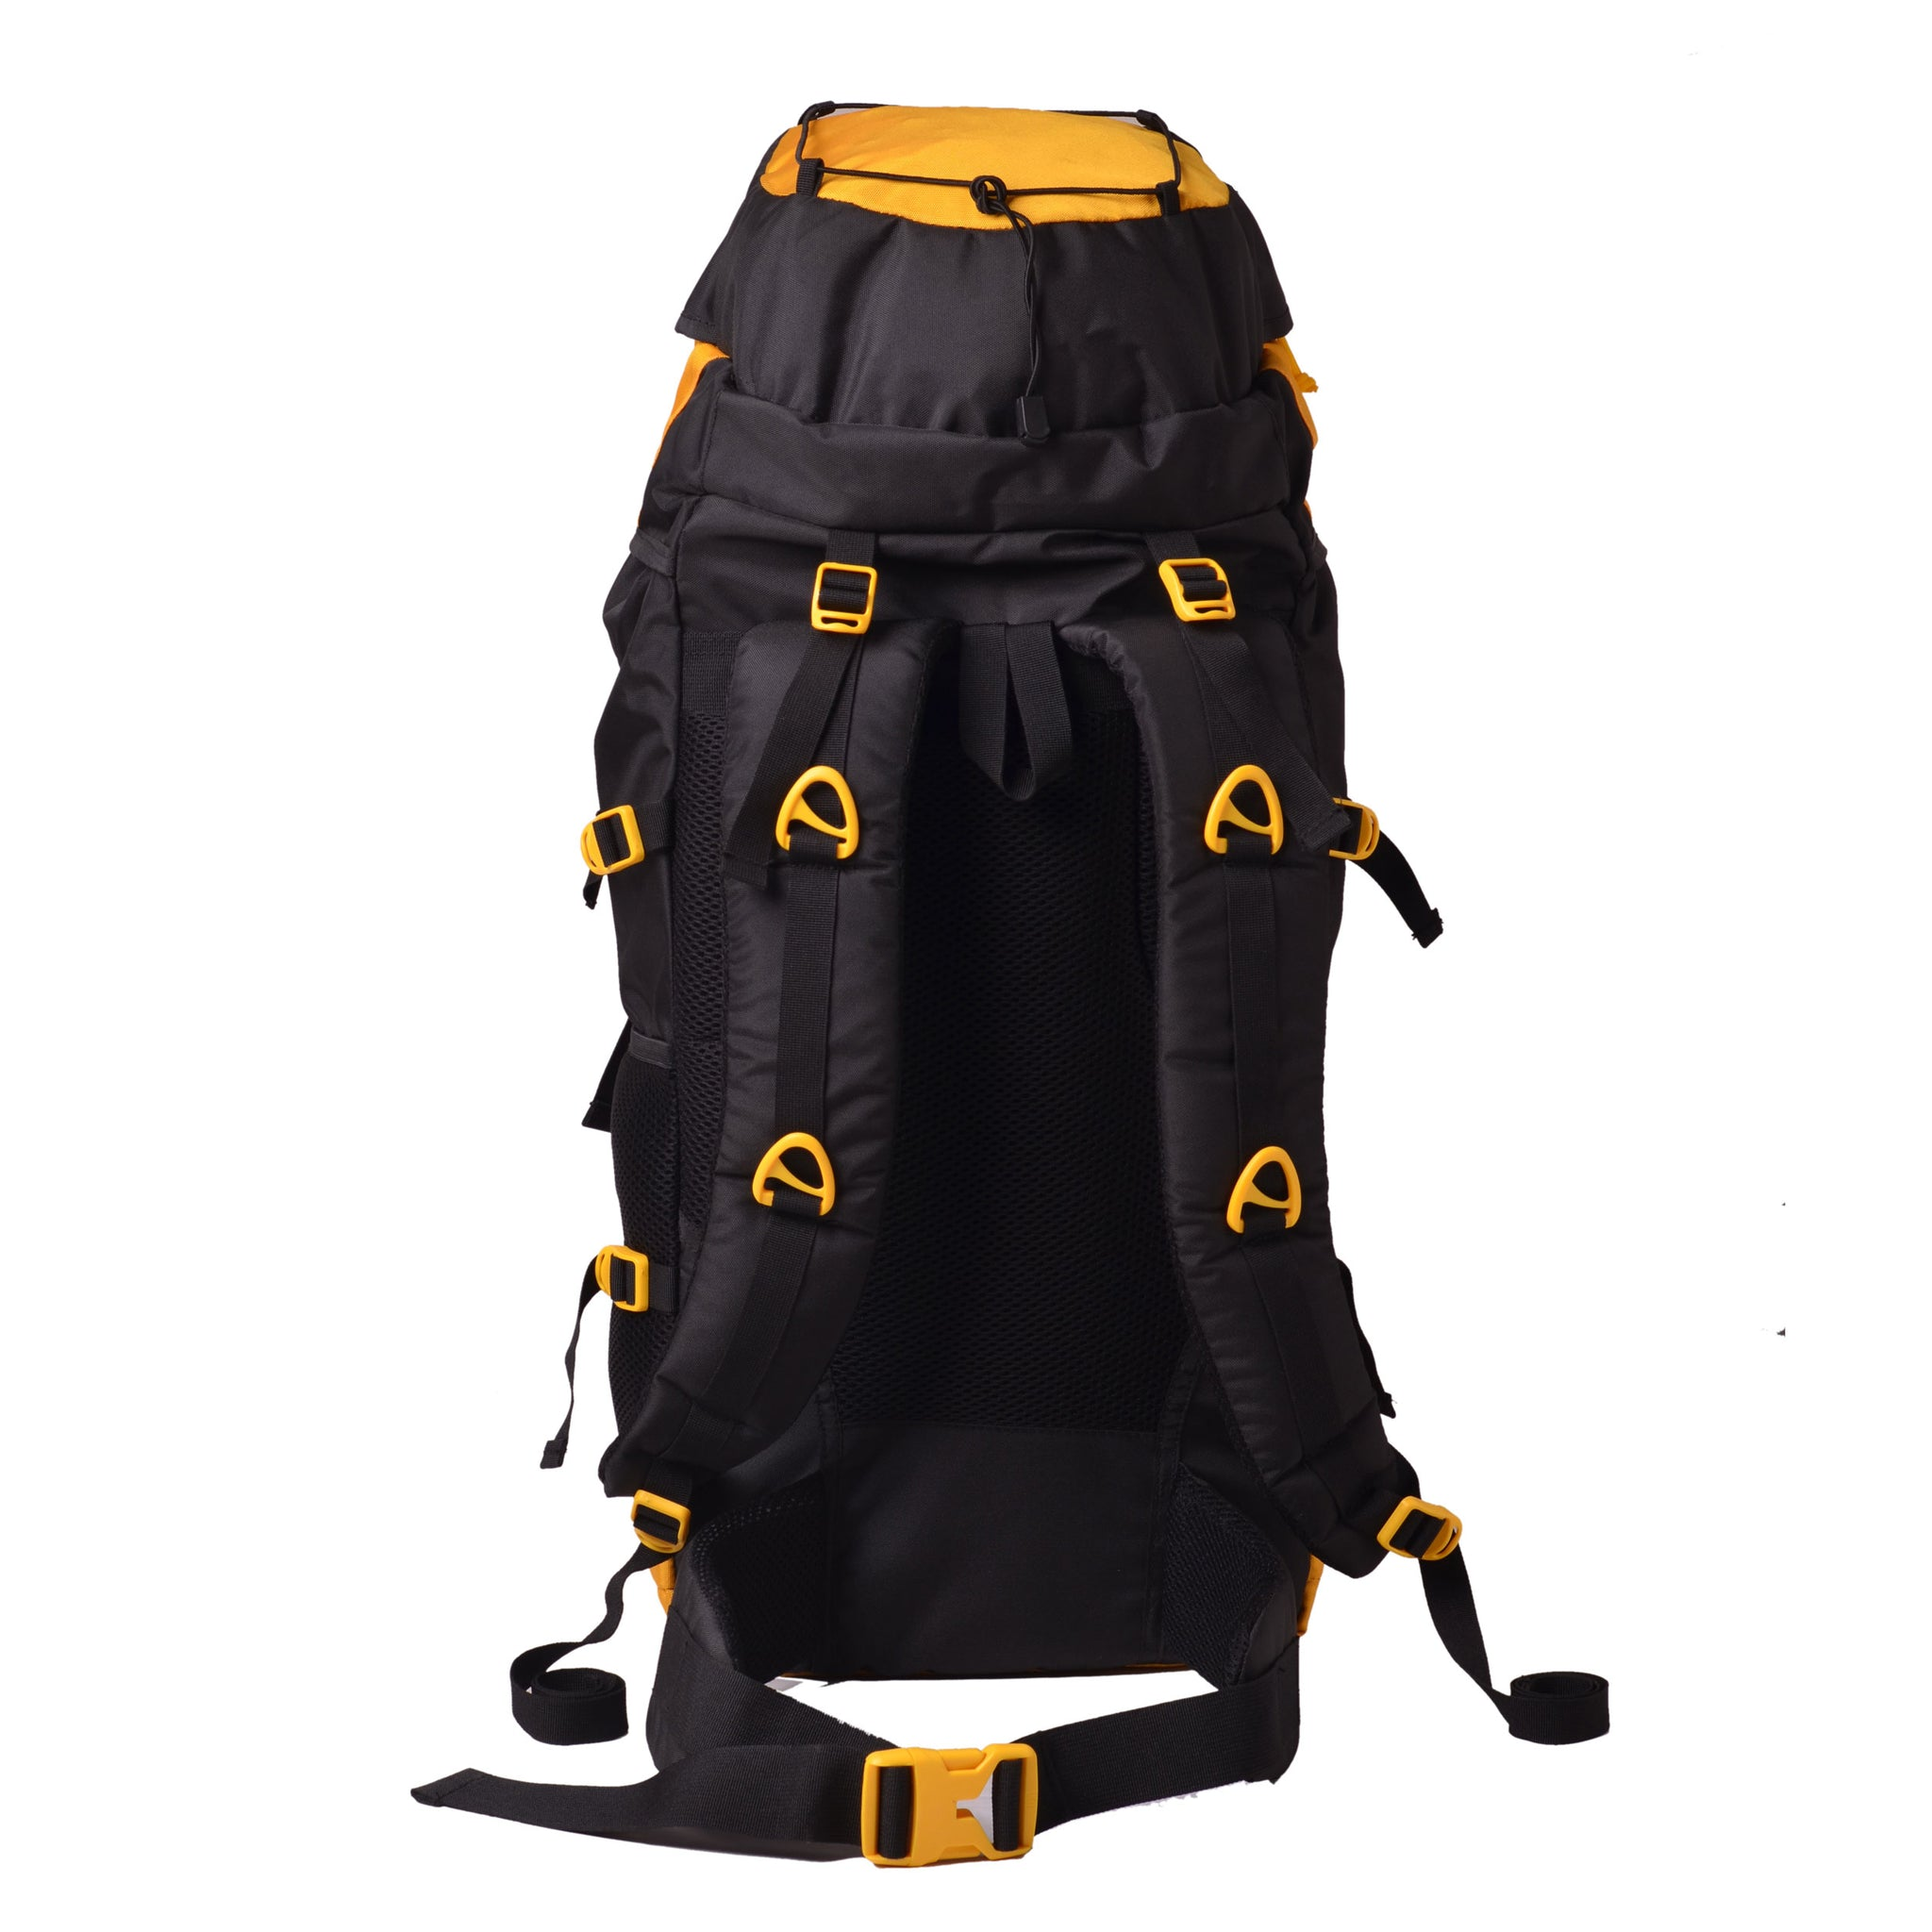 F Gear Drift 40 liter Rucksack (Black, Yellow)